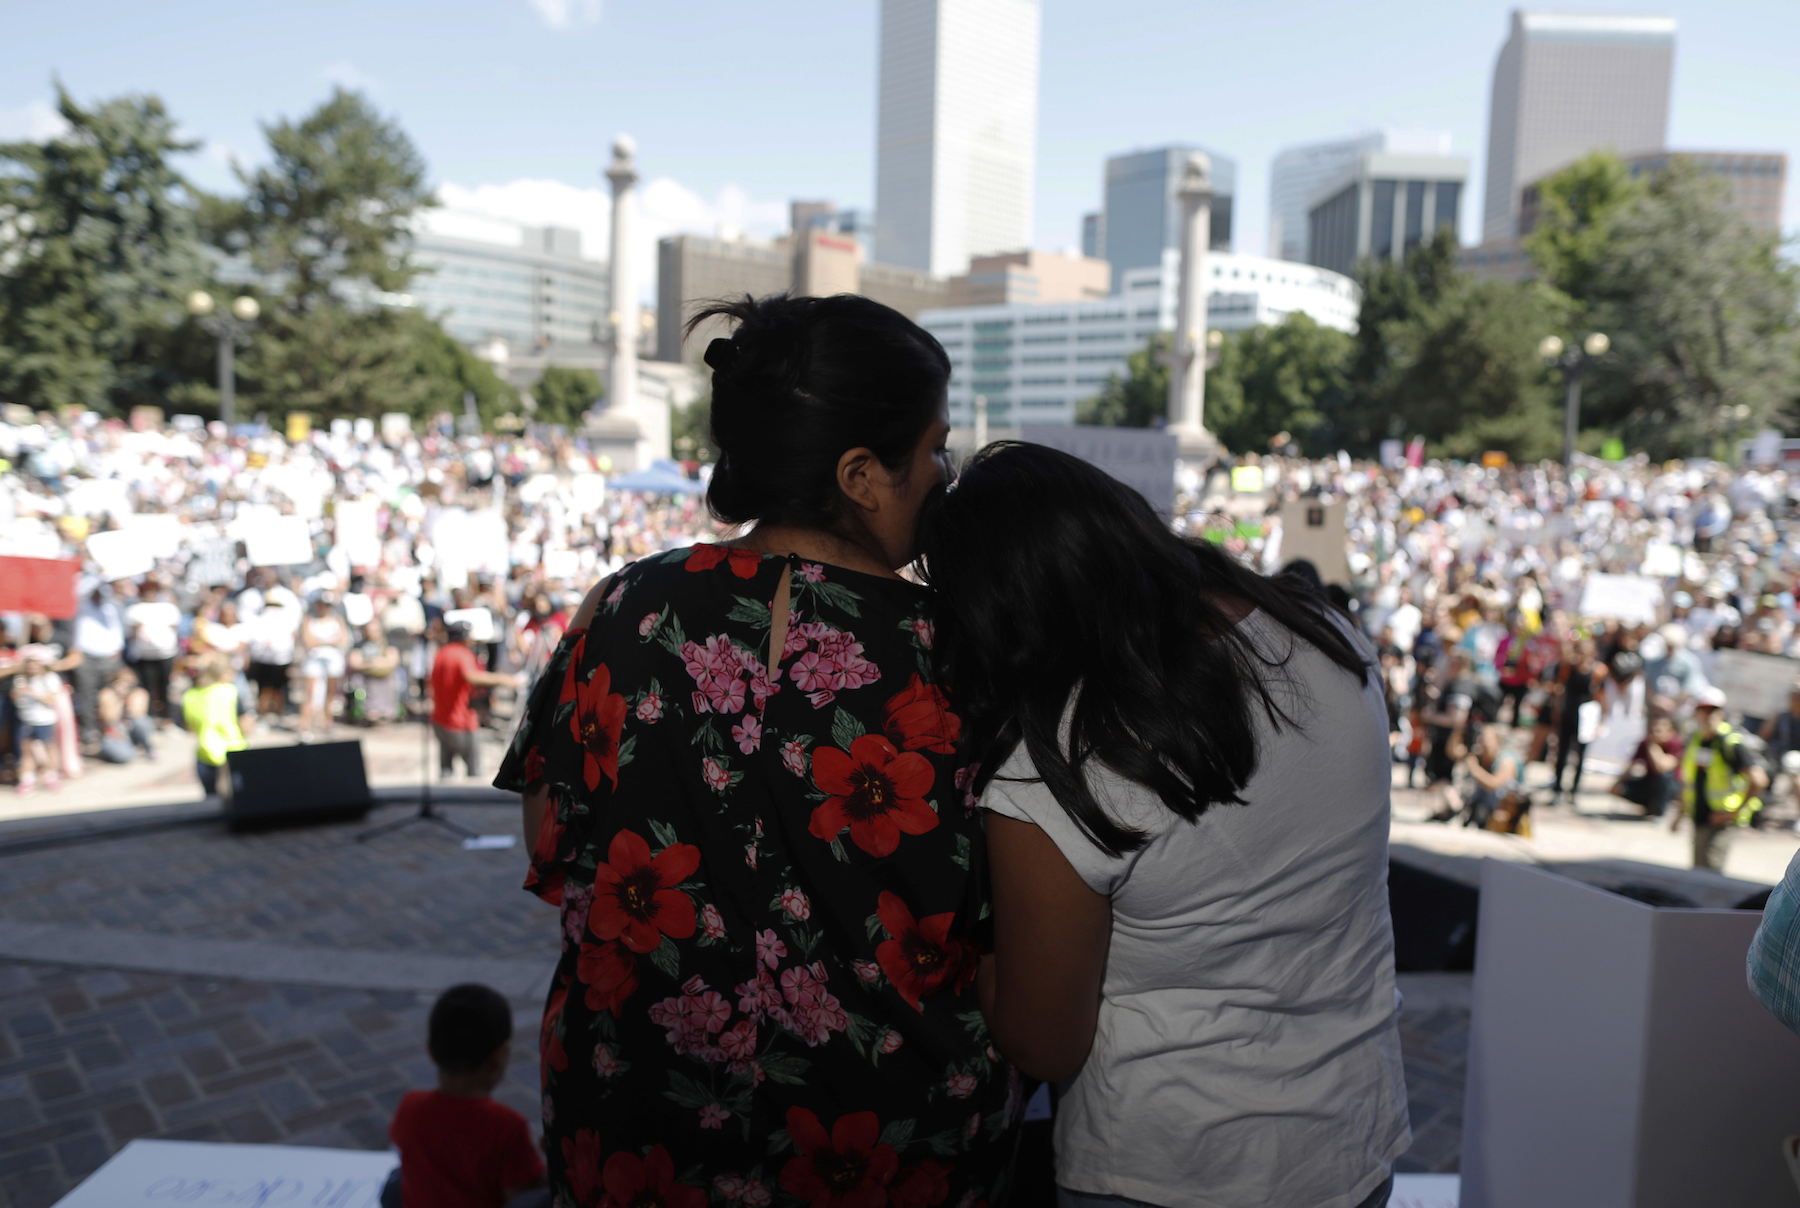 "<div class=""meta image-caption""><div class=""origin-logo origin-image ap""><span>AP</span></div><span class=""caption-text"">Brenda Villa, left, comforts her 11-year-old daughter, Kathryn, after speaking during an immigration rally and protest in Civic Center Park Saturday, June 30, 2018, in Denver. (AP Photo/David Zalubowski)</span></div>"